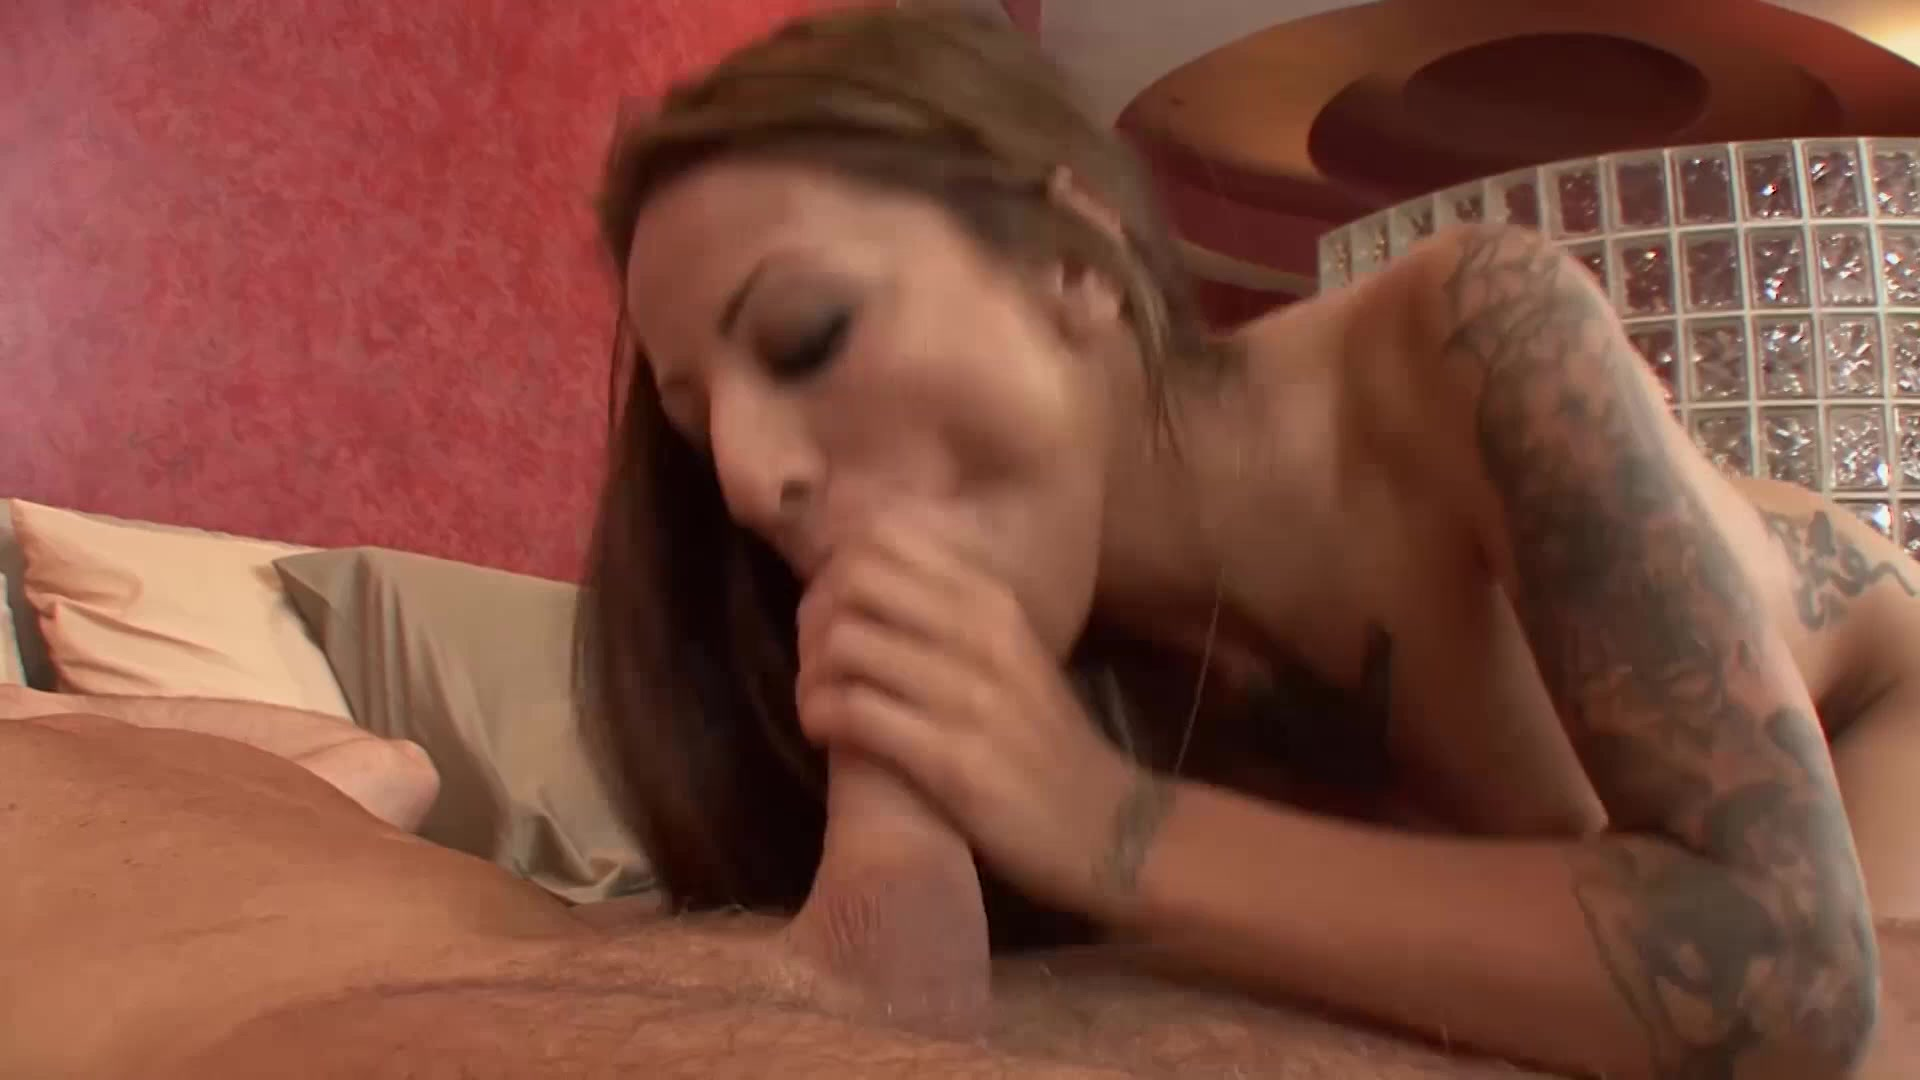 Yes Daddy I suck your cock